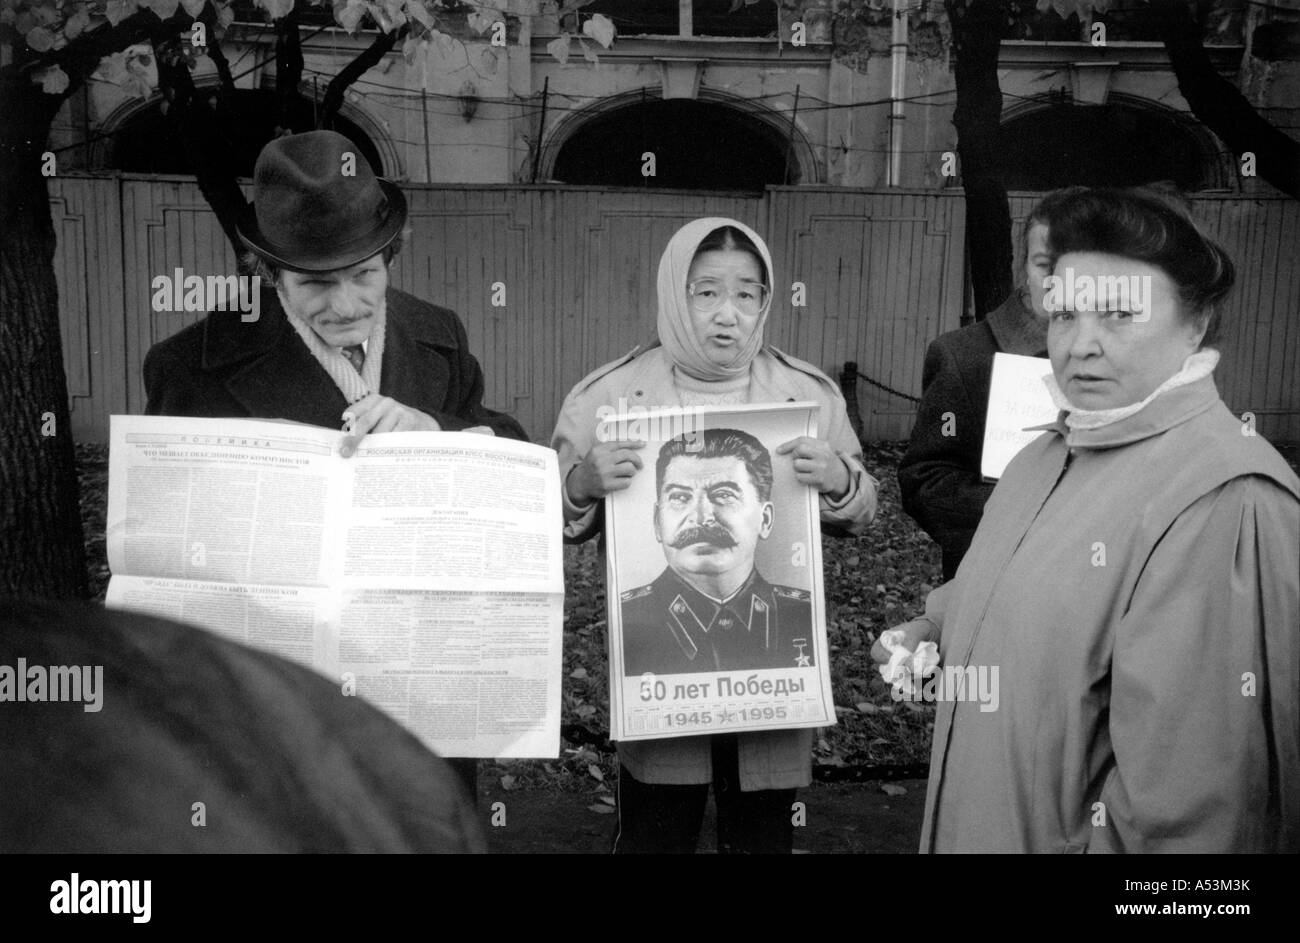 Painet ha1358 158 black and white stress communists demonstrating nevsky prospect saint petersburg russia country - Stock Image